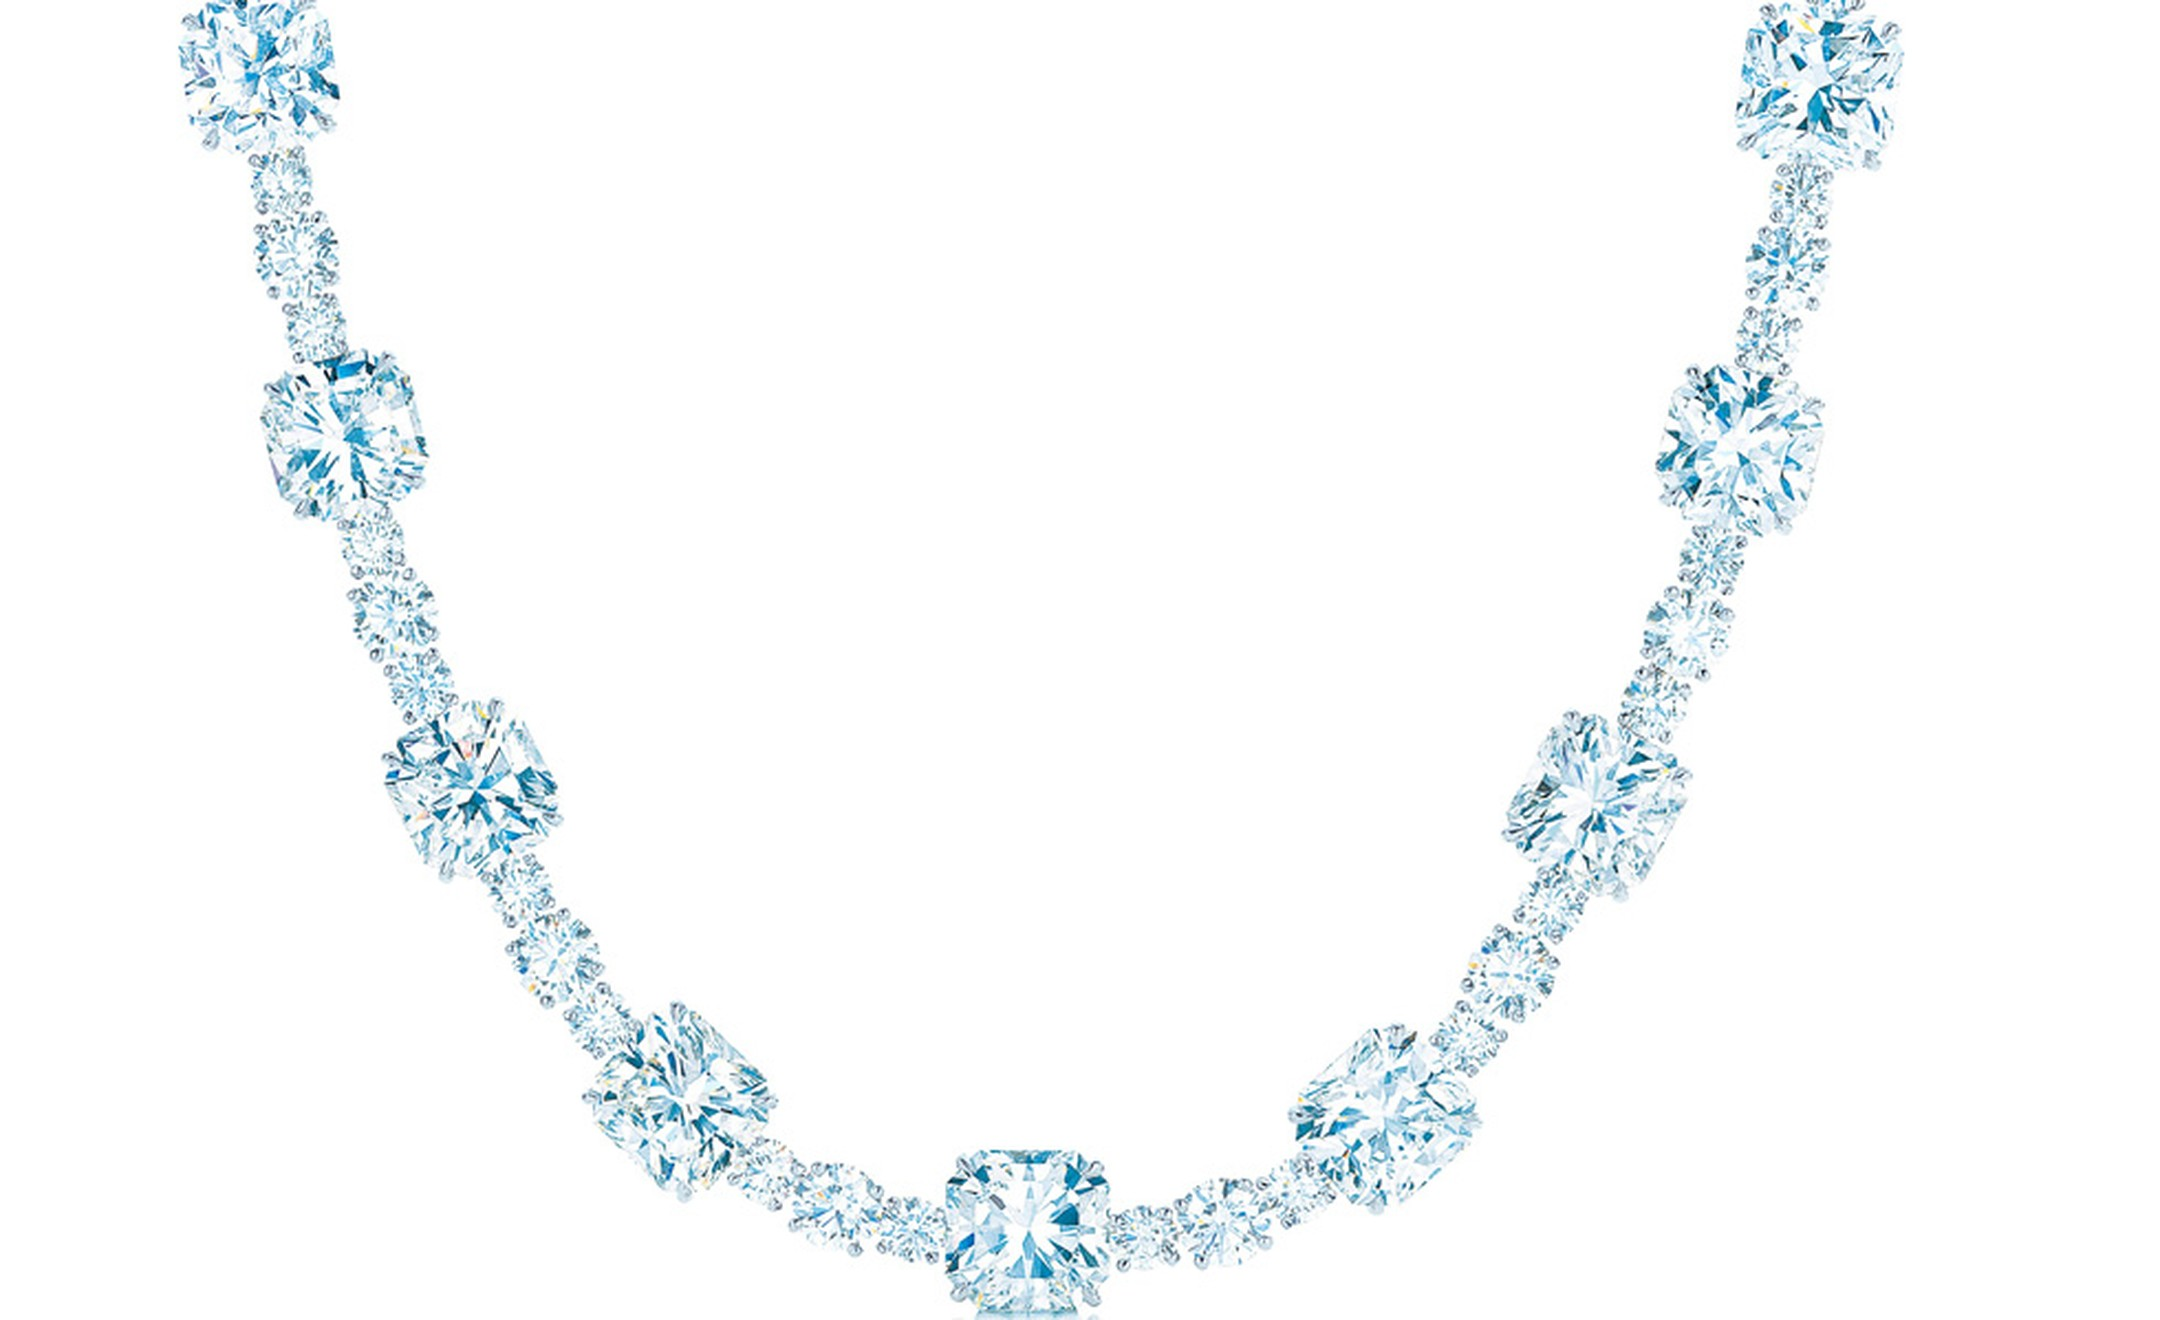 The Tiffany Lucida Star diamond necklace valued at US$ 10,000,000 as worn by Anne Hathaway at the Oscars 2011. The platinum necklace is set with 94 carats of diamonds.